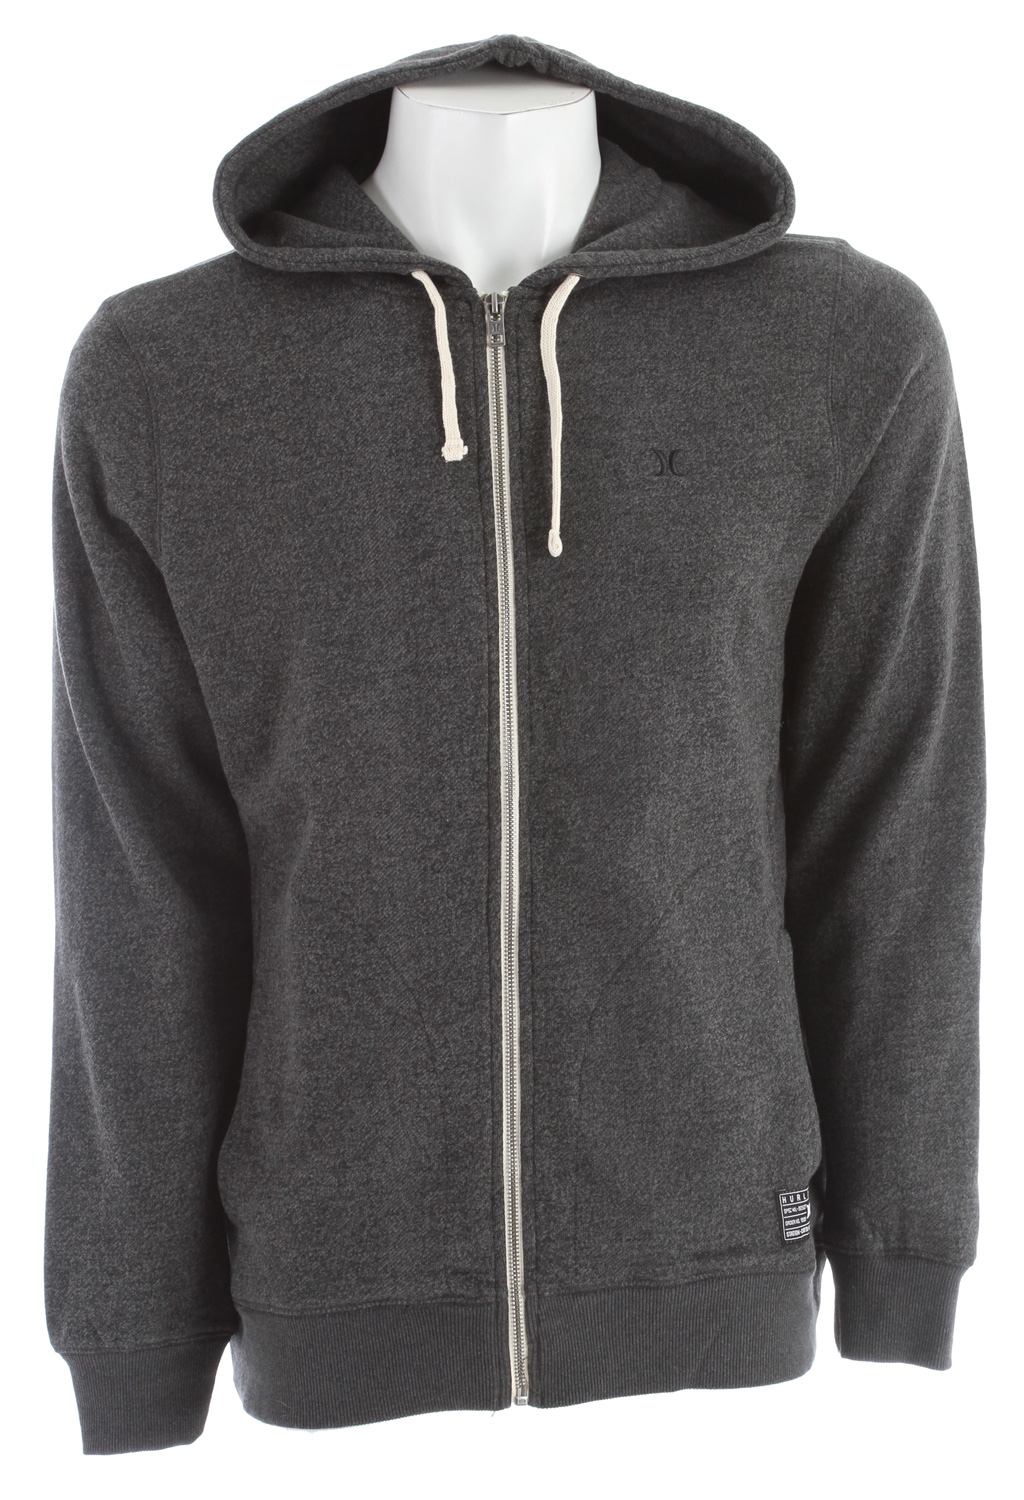 Surf Key Features of the Hurley Vacation Zip Hoodie: Regular Fit 65% Cotton/35% Polyester French Terry 280gsm Classic full zip hoodie with unique Hurley trims - $35.95